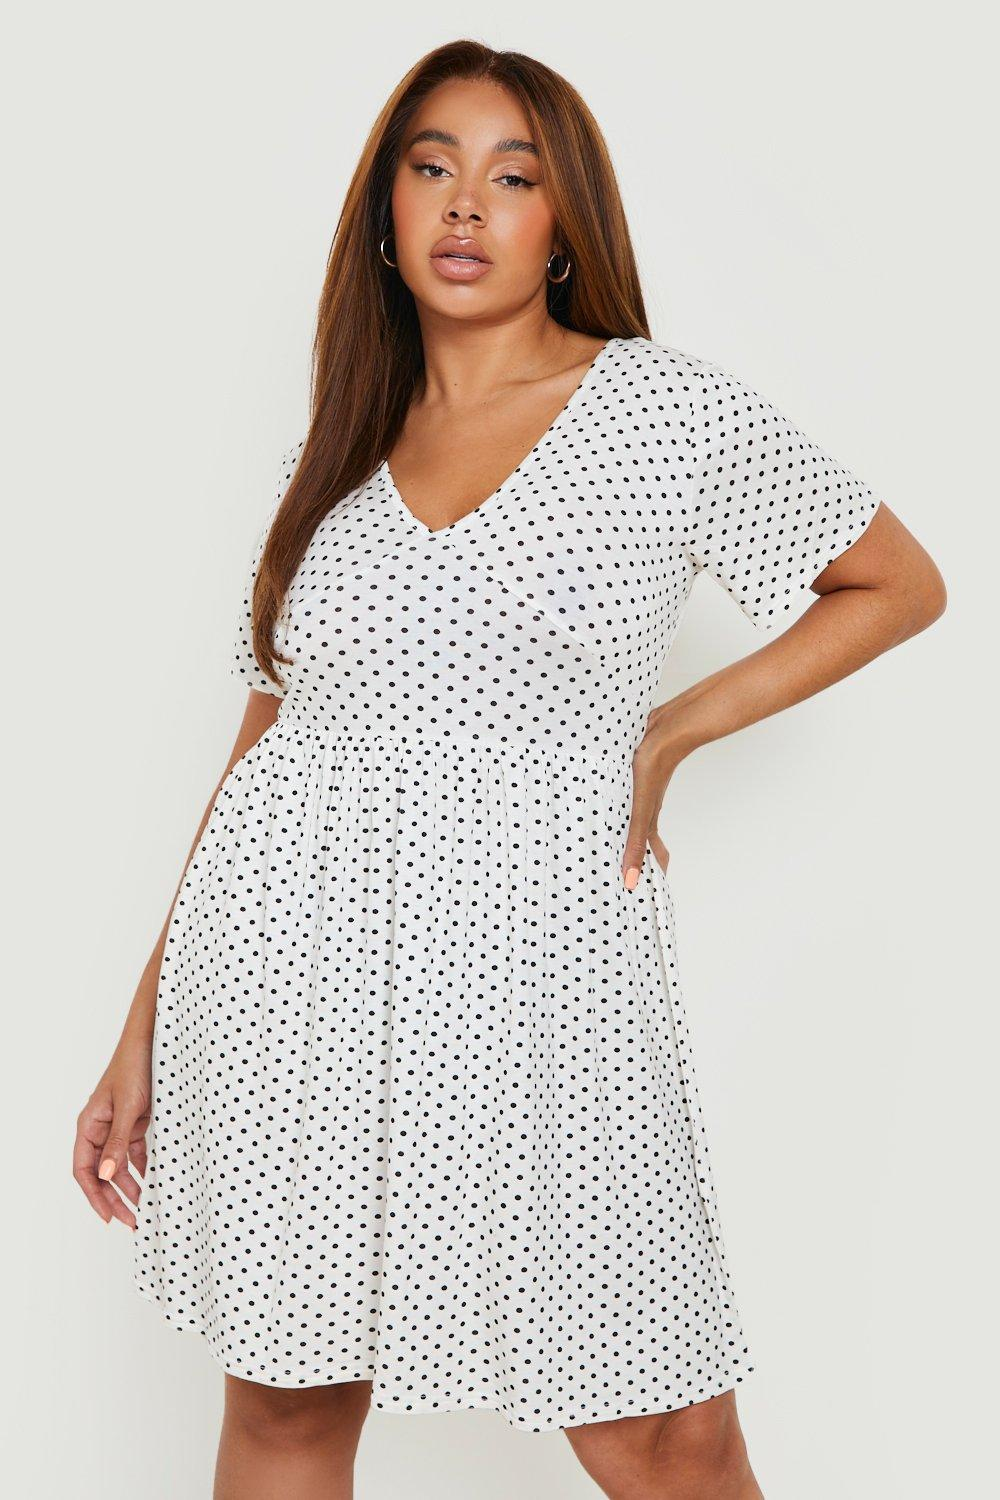 boohoo Womens Plus Plunge Polka Dot Cap Sleeve Sundress - White - 20, White